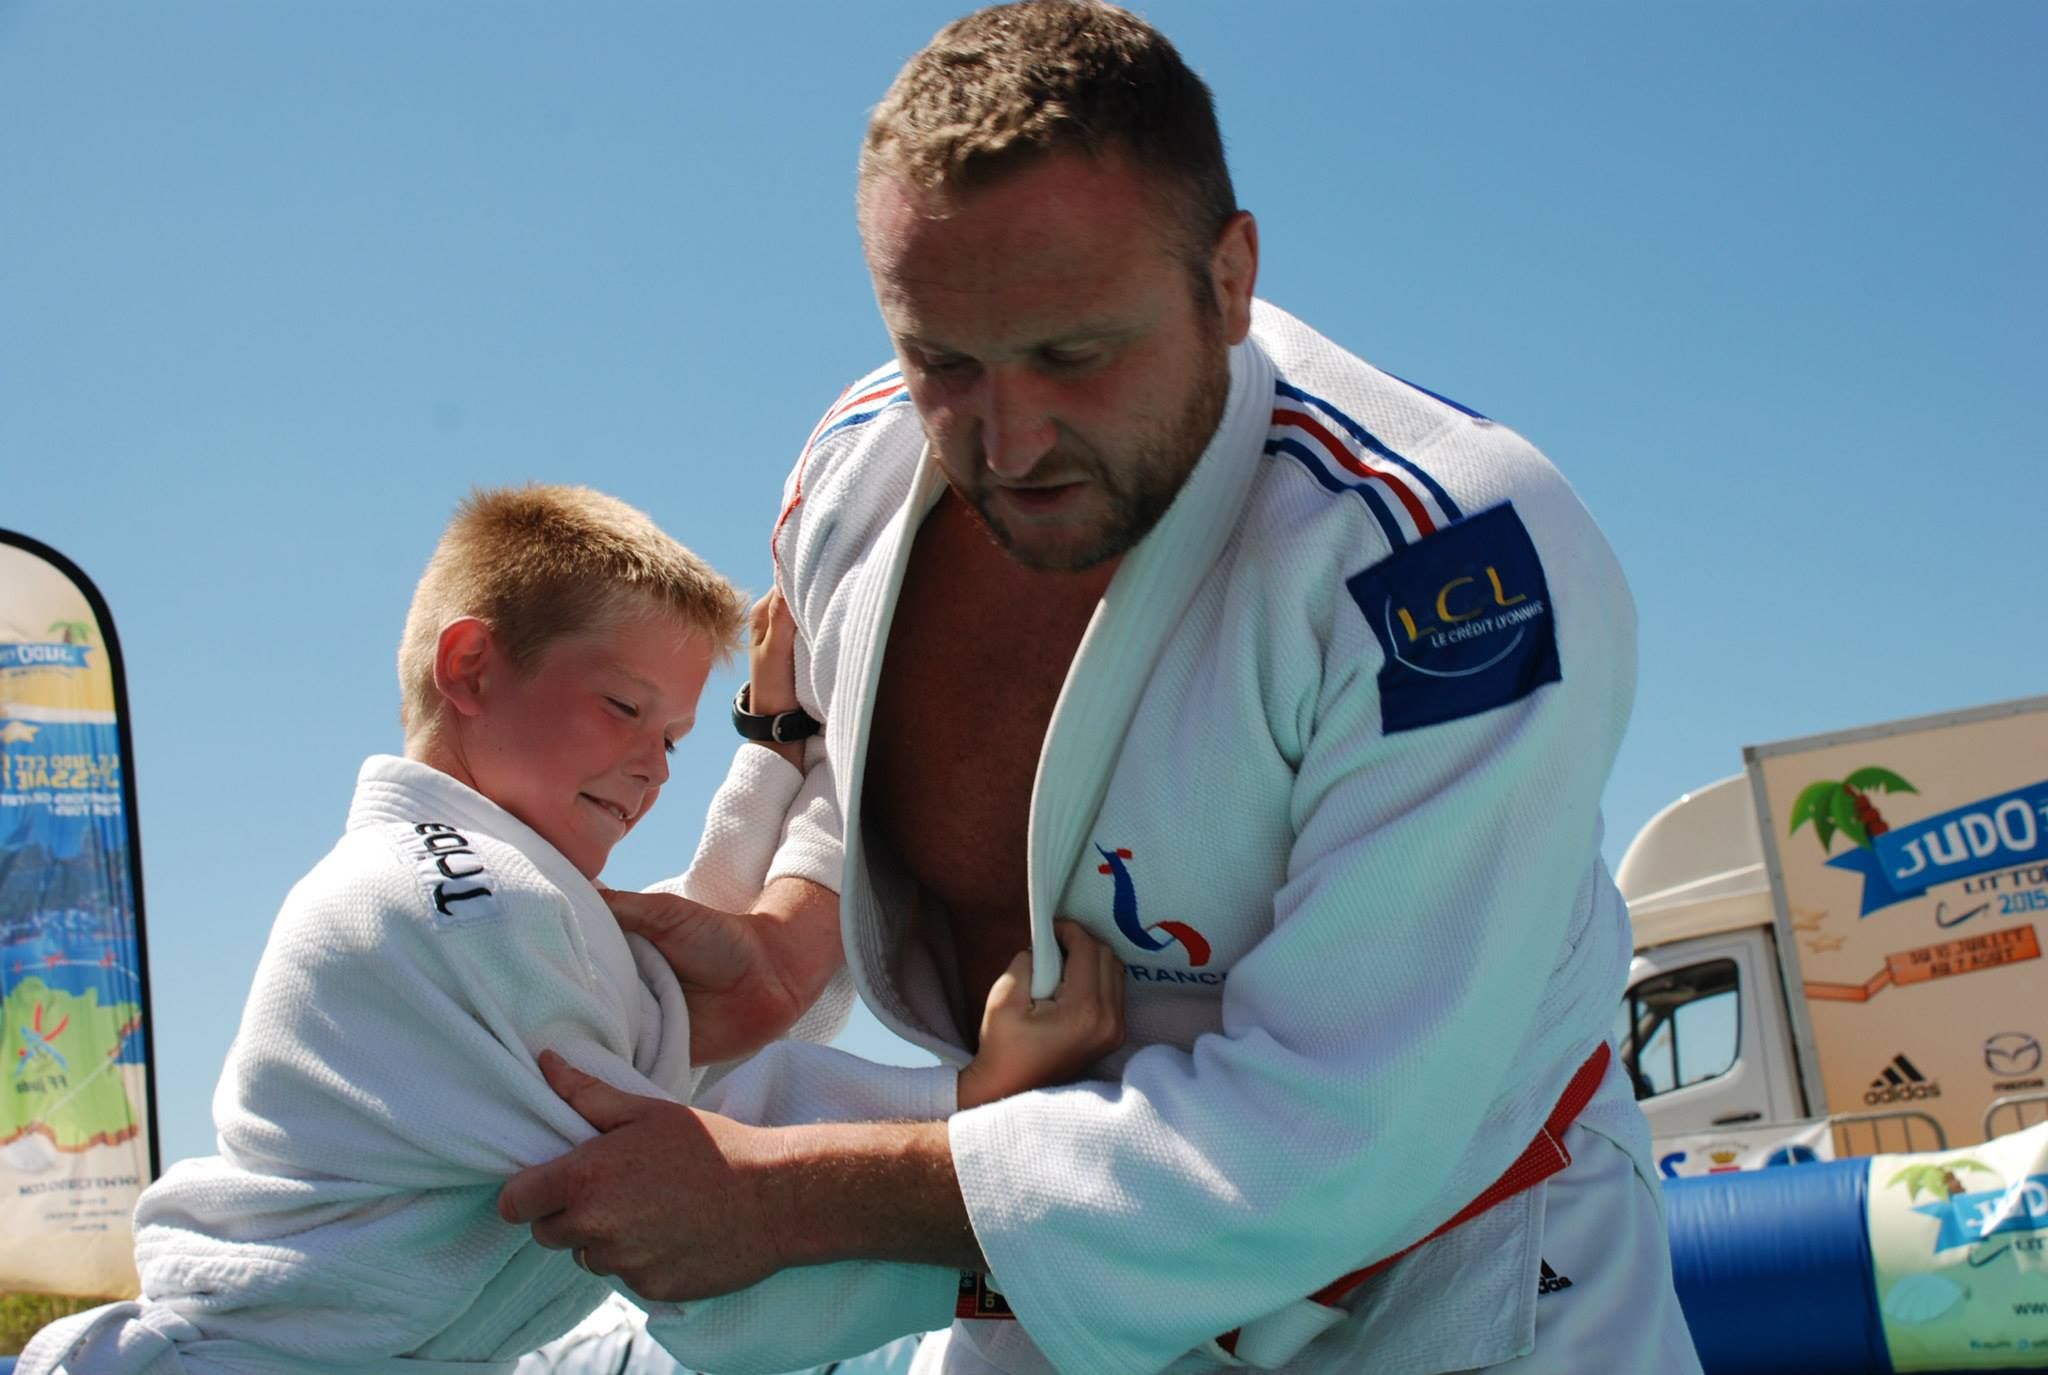 Judo Littoral Tour